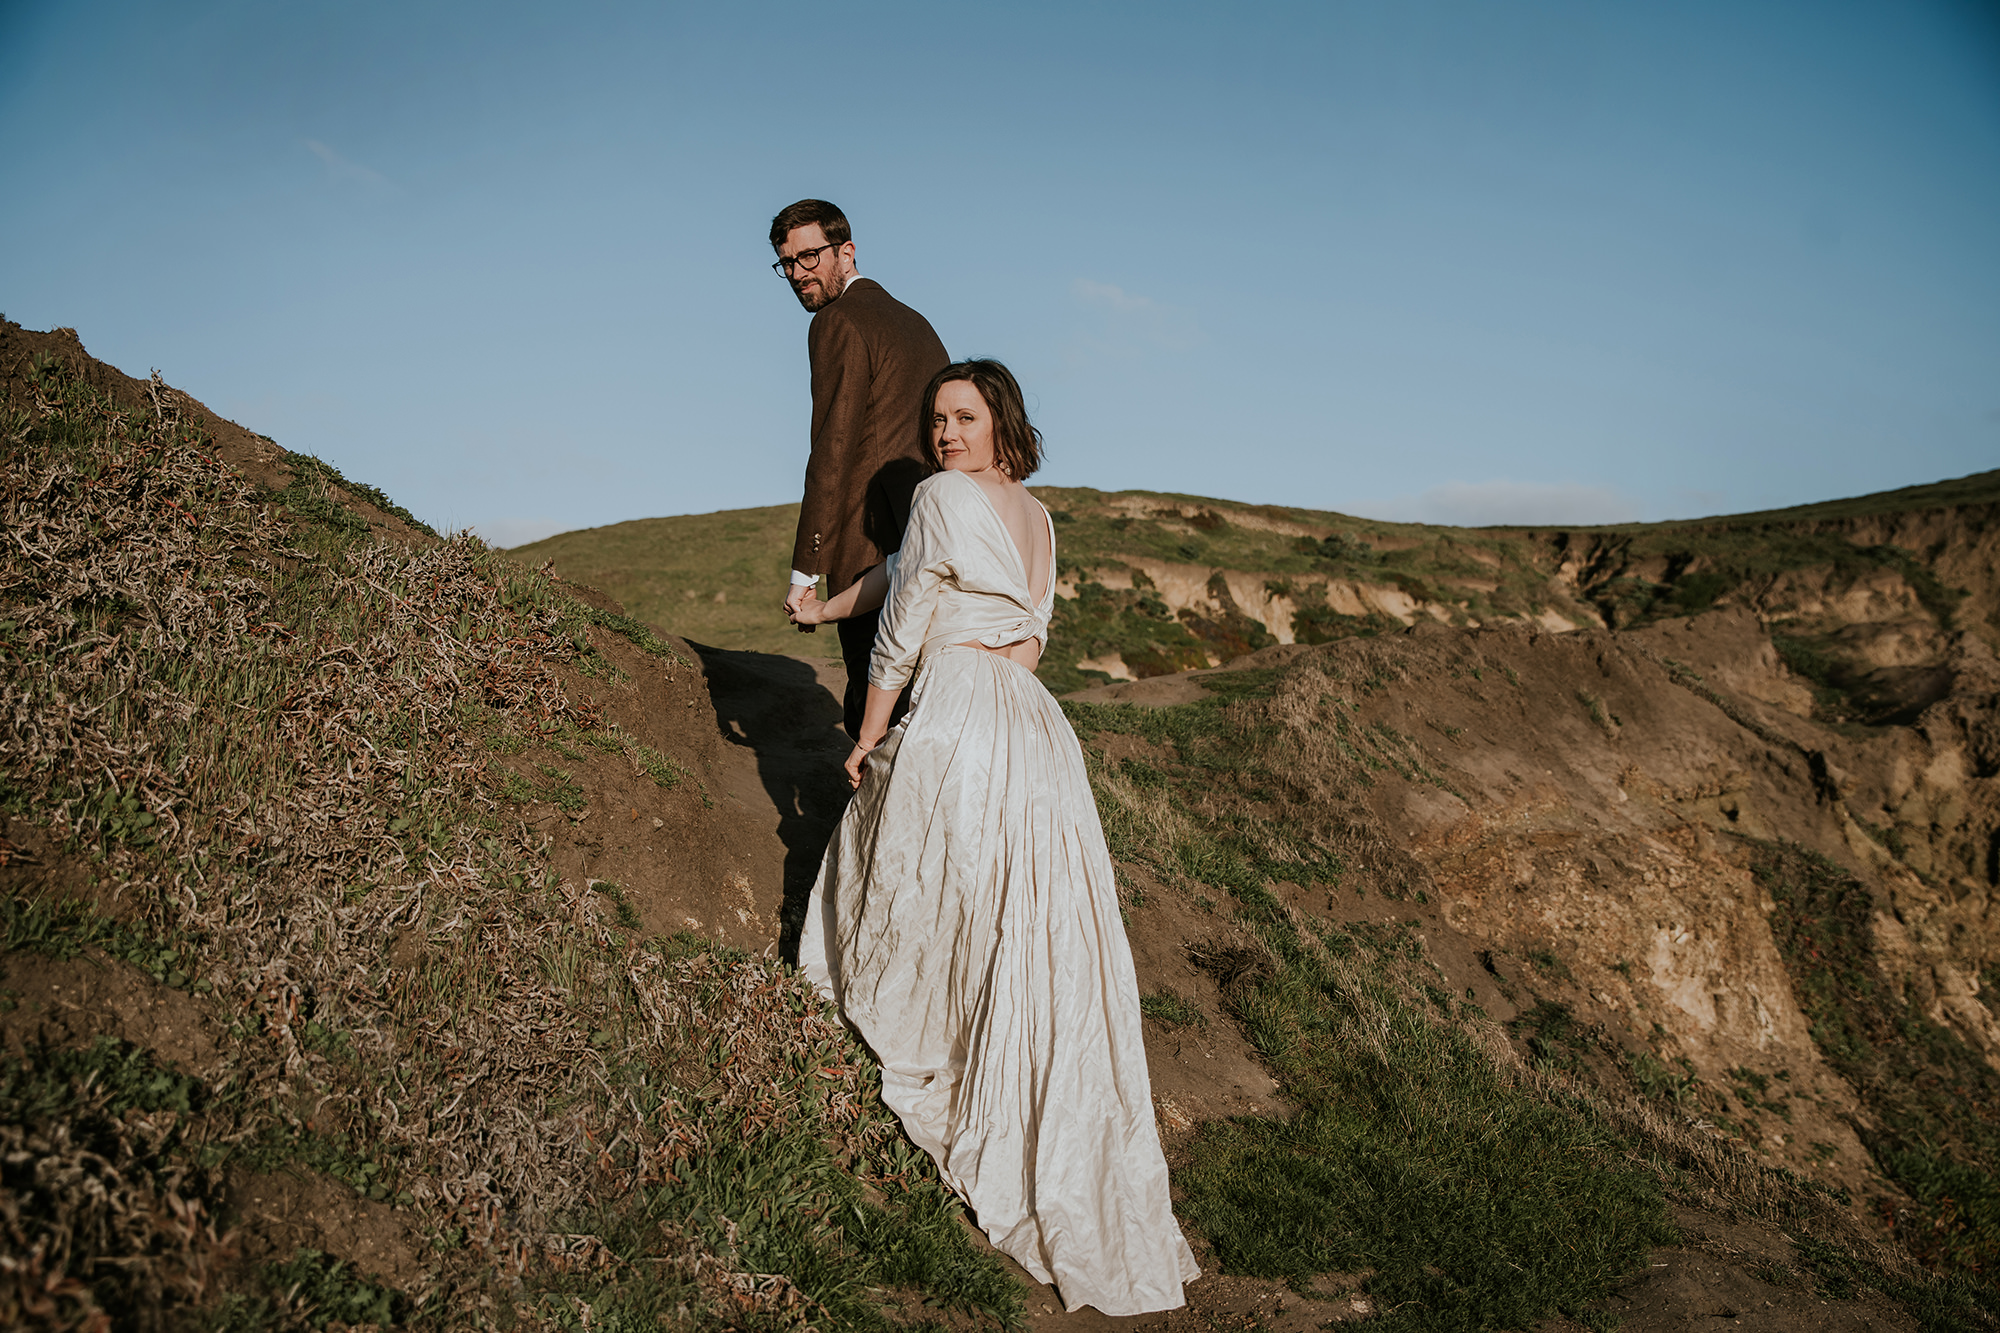 Climbing up the cliff side during their Point Reyes elopement.